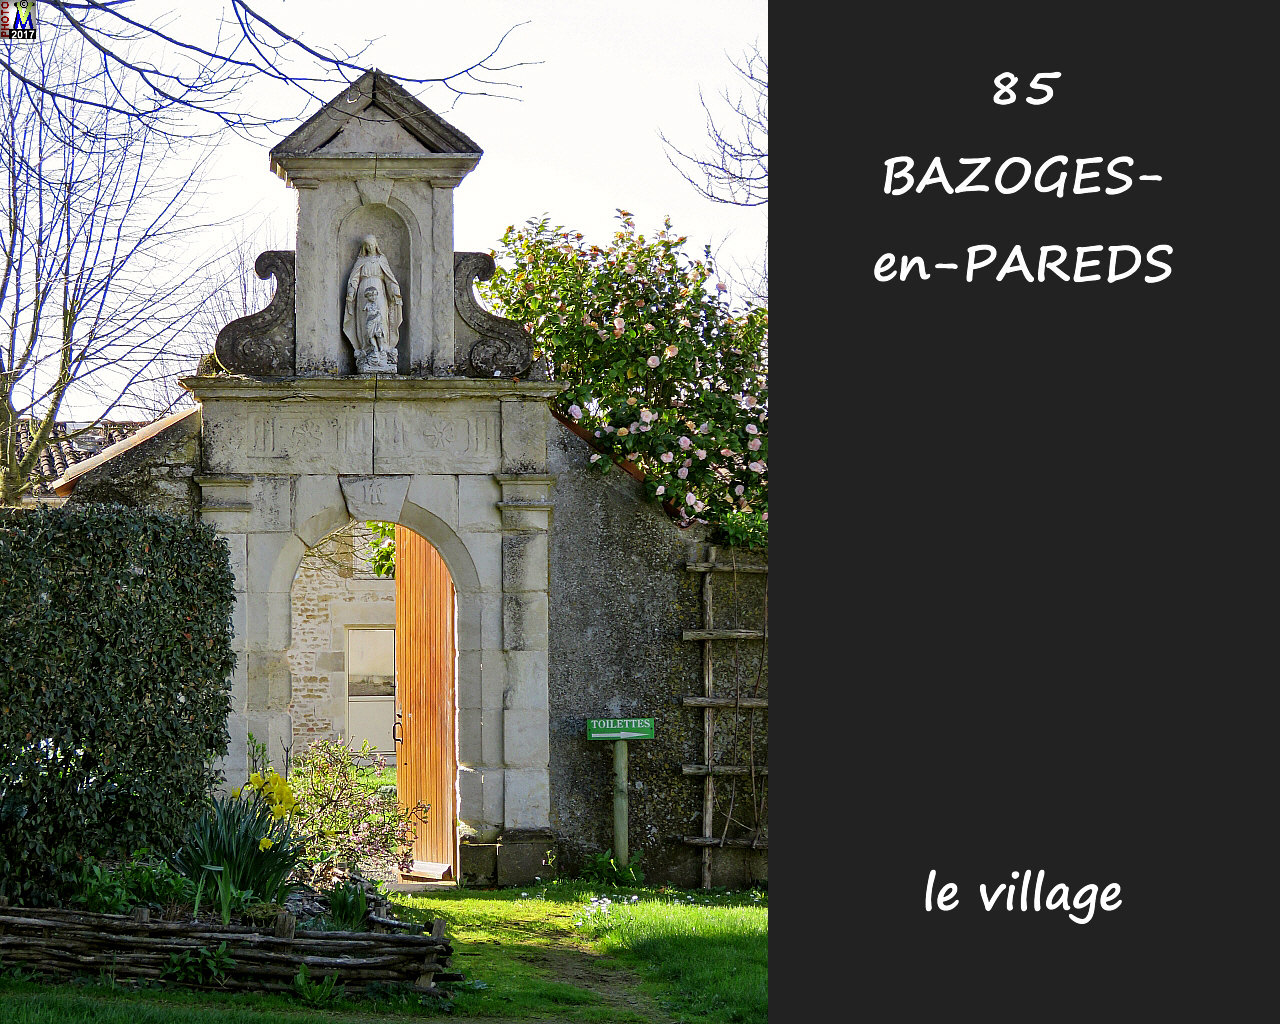 85BAZOGES-PAREDS_village_1000.jpg